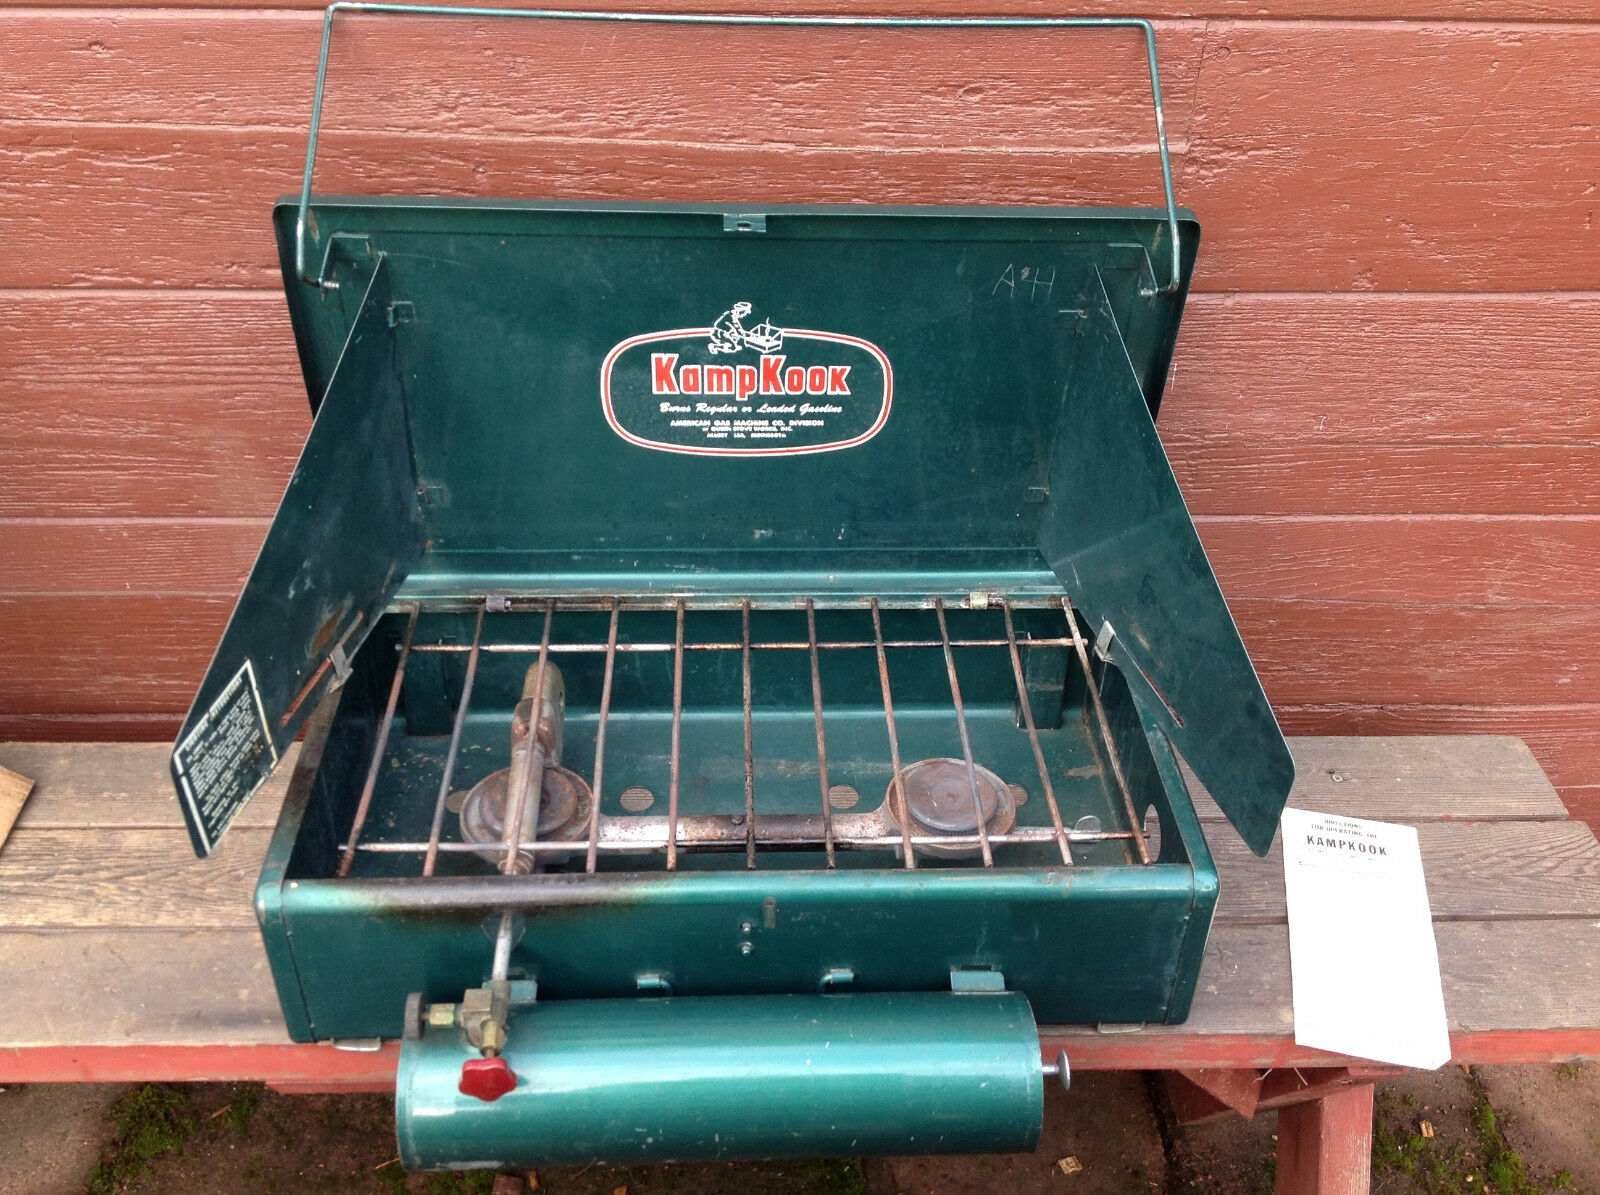 KampKook LCS - 41  Two Burner Gasoline Stove in Original Box with Paperwork  best quality best price